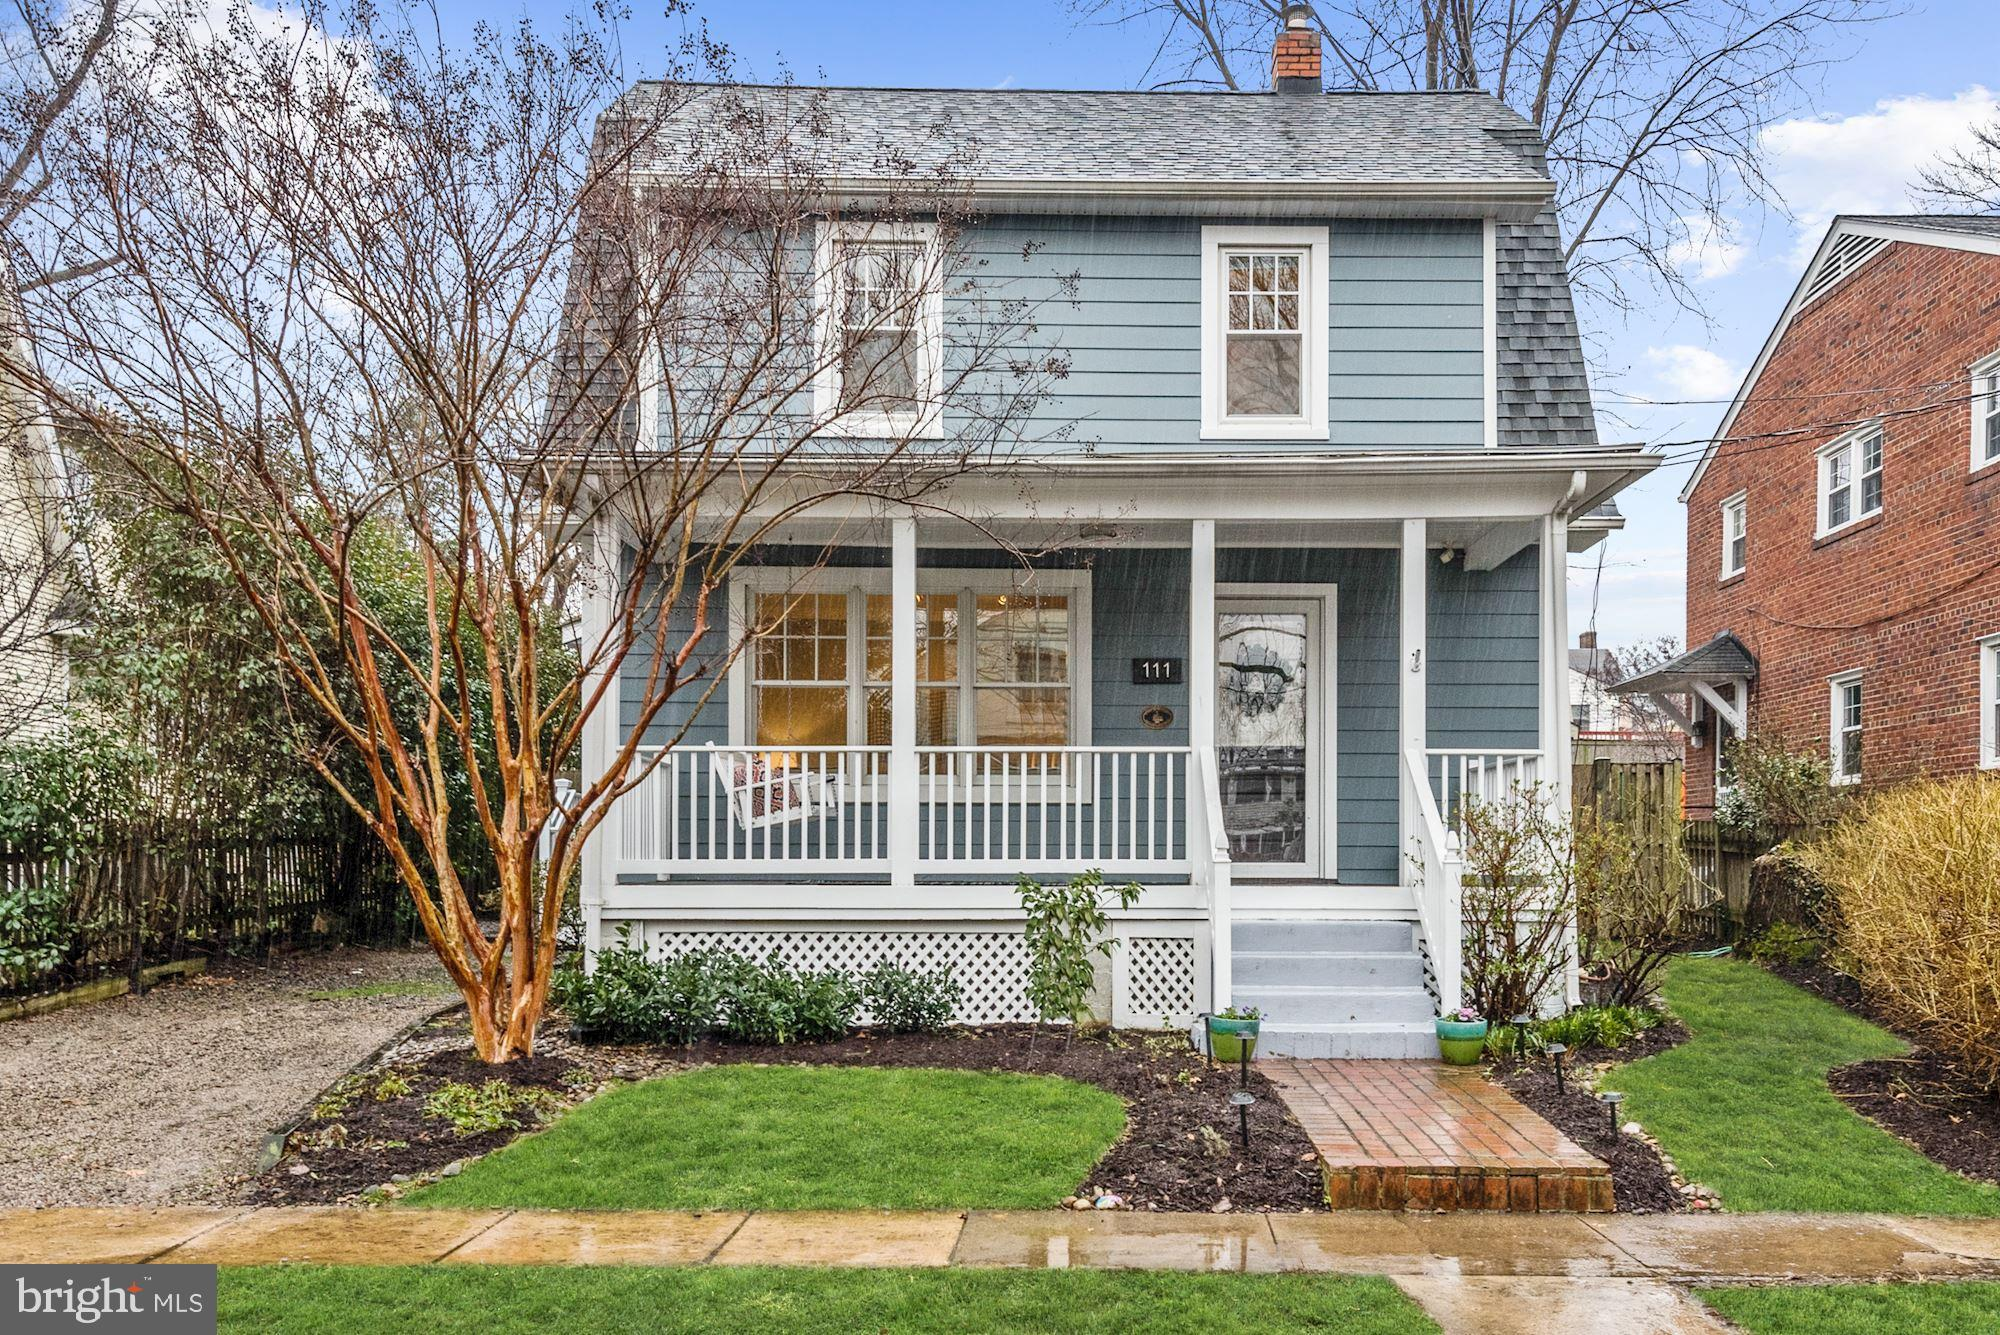 Wonderful, expanded dutch colonial with charming front porch is just one block from Del Ray's popular shops and restaurants. This home was renovated and expanded in 2014. The fabulous open floorplan of the home effortlessly blends the updates for today's living without losing the character of the period of the home. The home features a family room addition, main level powder room and four bedrooms on upper level including master with ensuite bath and walk-in closet. Gorgeous kitchen with sleek cabinetry, beautiful granite counters, expansive breakfast bar, and stainless steel appliances. The light-filled family room has a cozy gas fireplace, recessed lighting, large dining area and French doors leading to the backyard. Side entrance with large hall closet and space for shelving. Fully fenced back yard for outdoor entertaining with playset, zipline and storage shed. Off-street parking. Enjoy living in the heart of Del Ray.